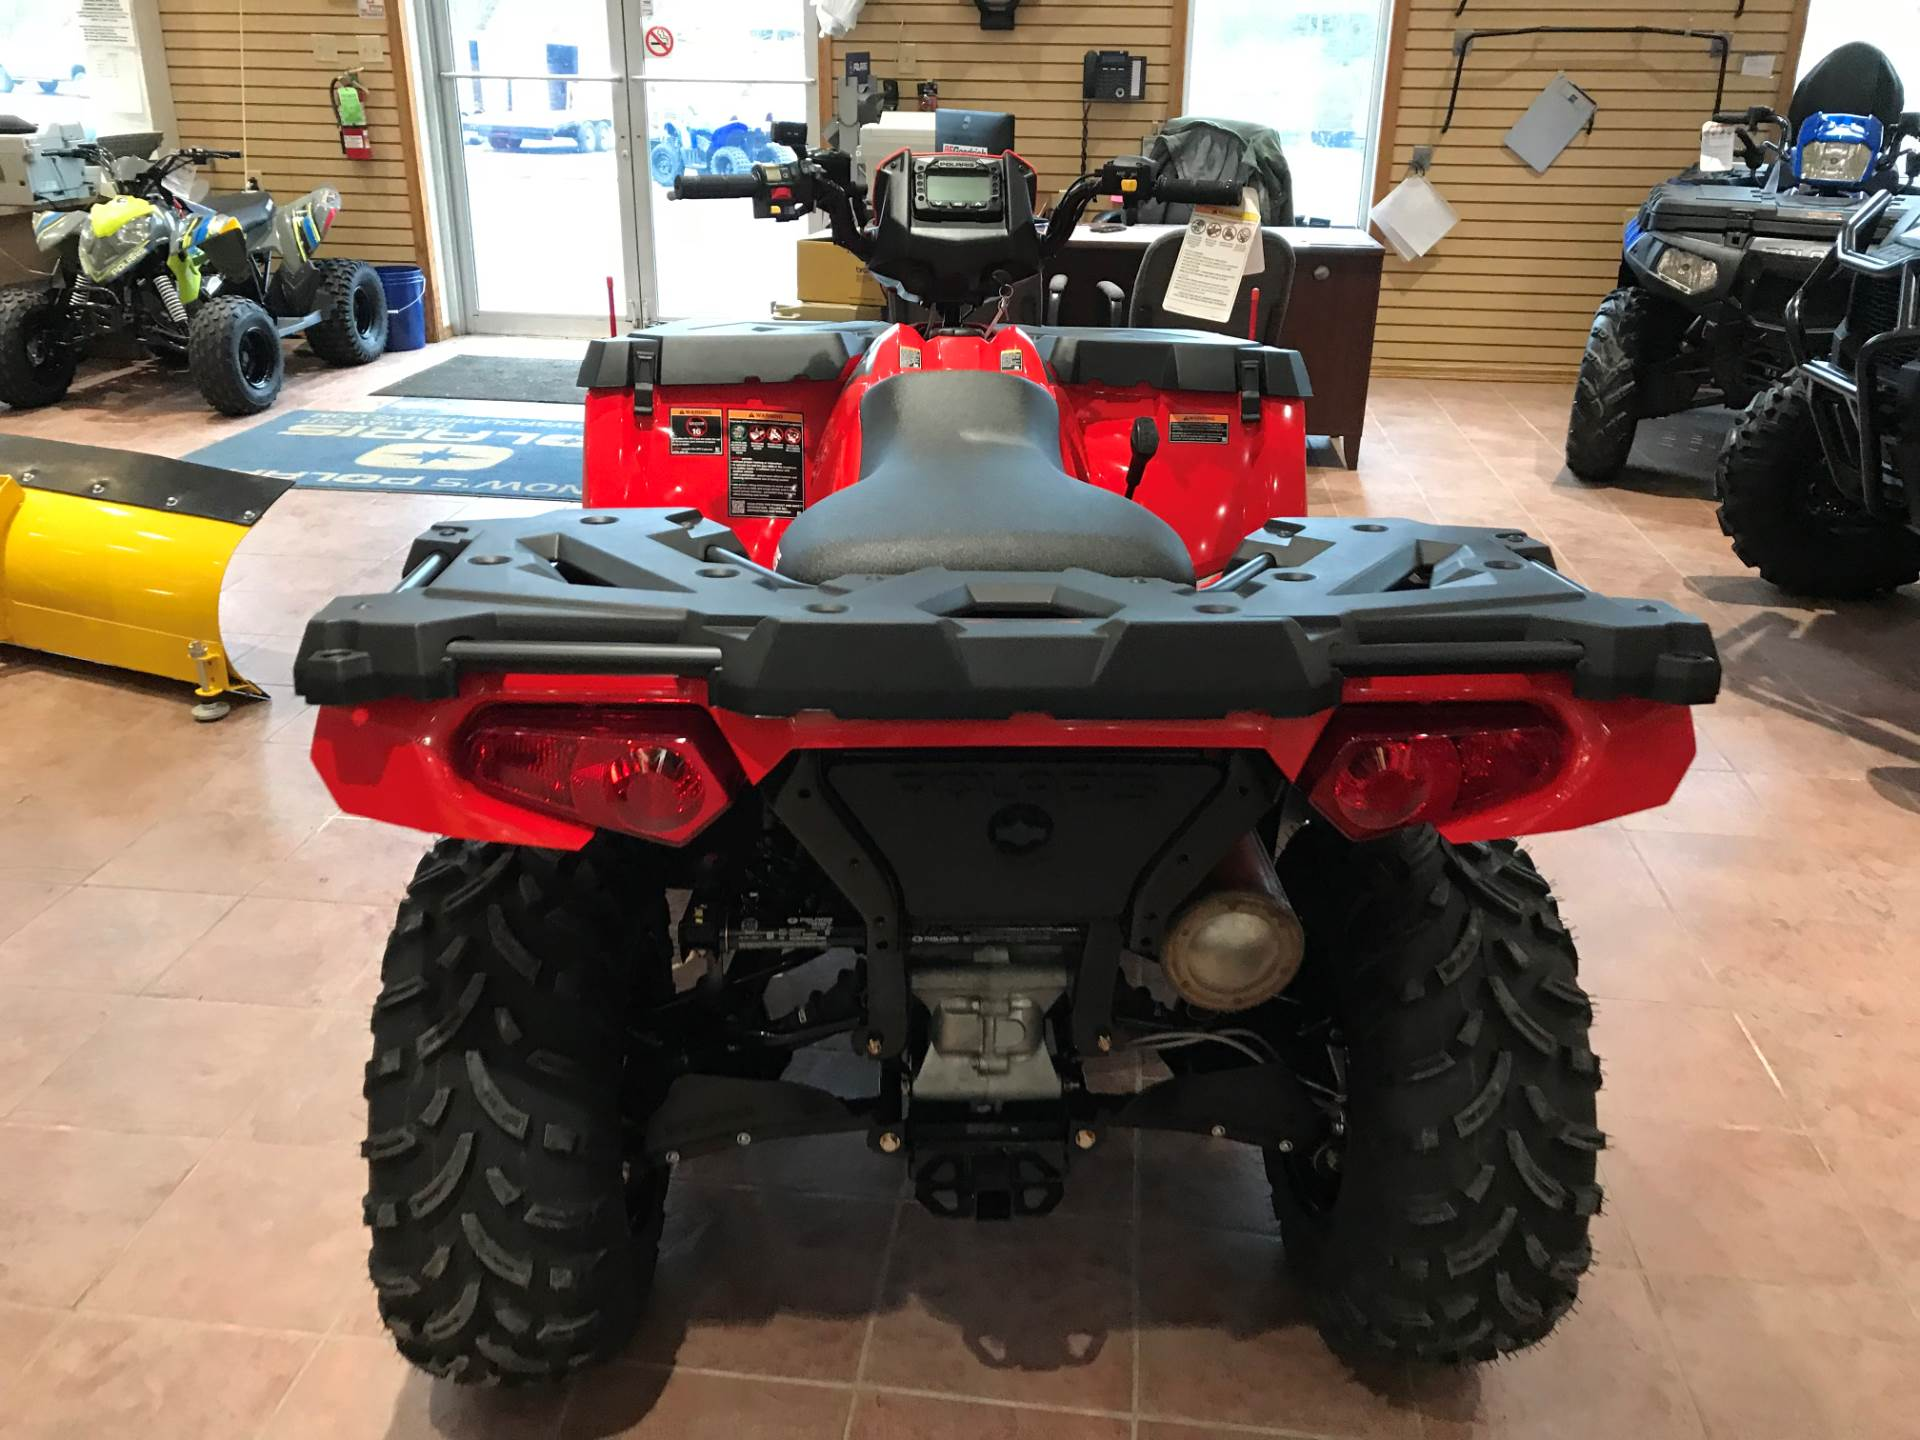 2019 Polaris Sportsman 450 H.O. in Chicora, Pennsylvania - Photo 5